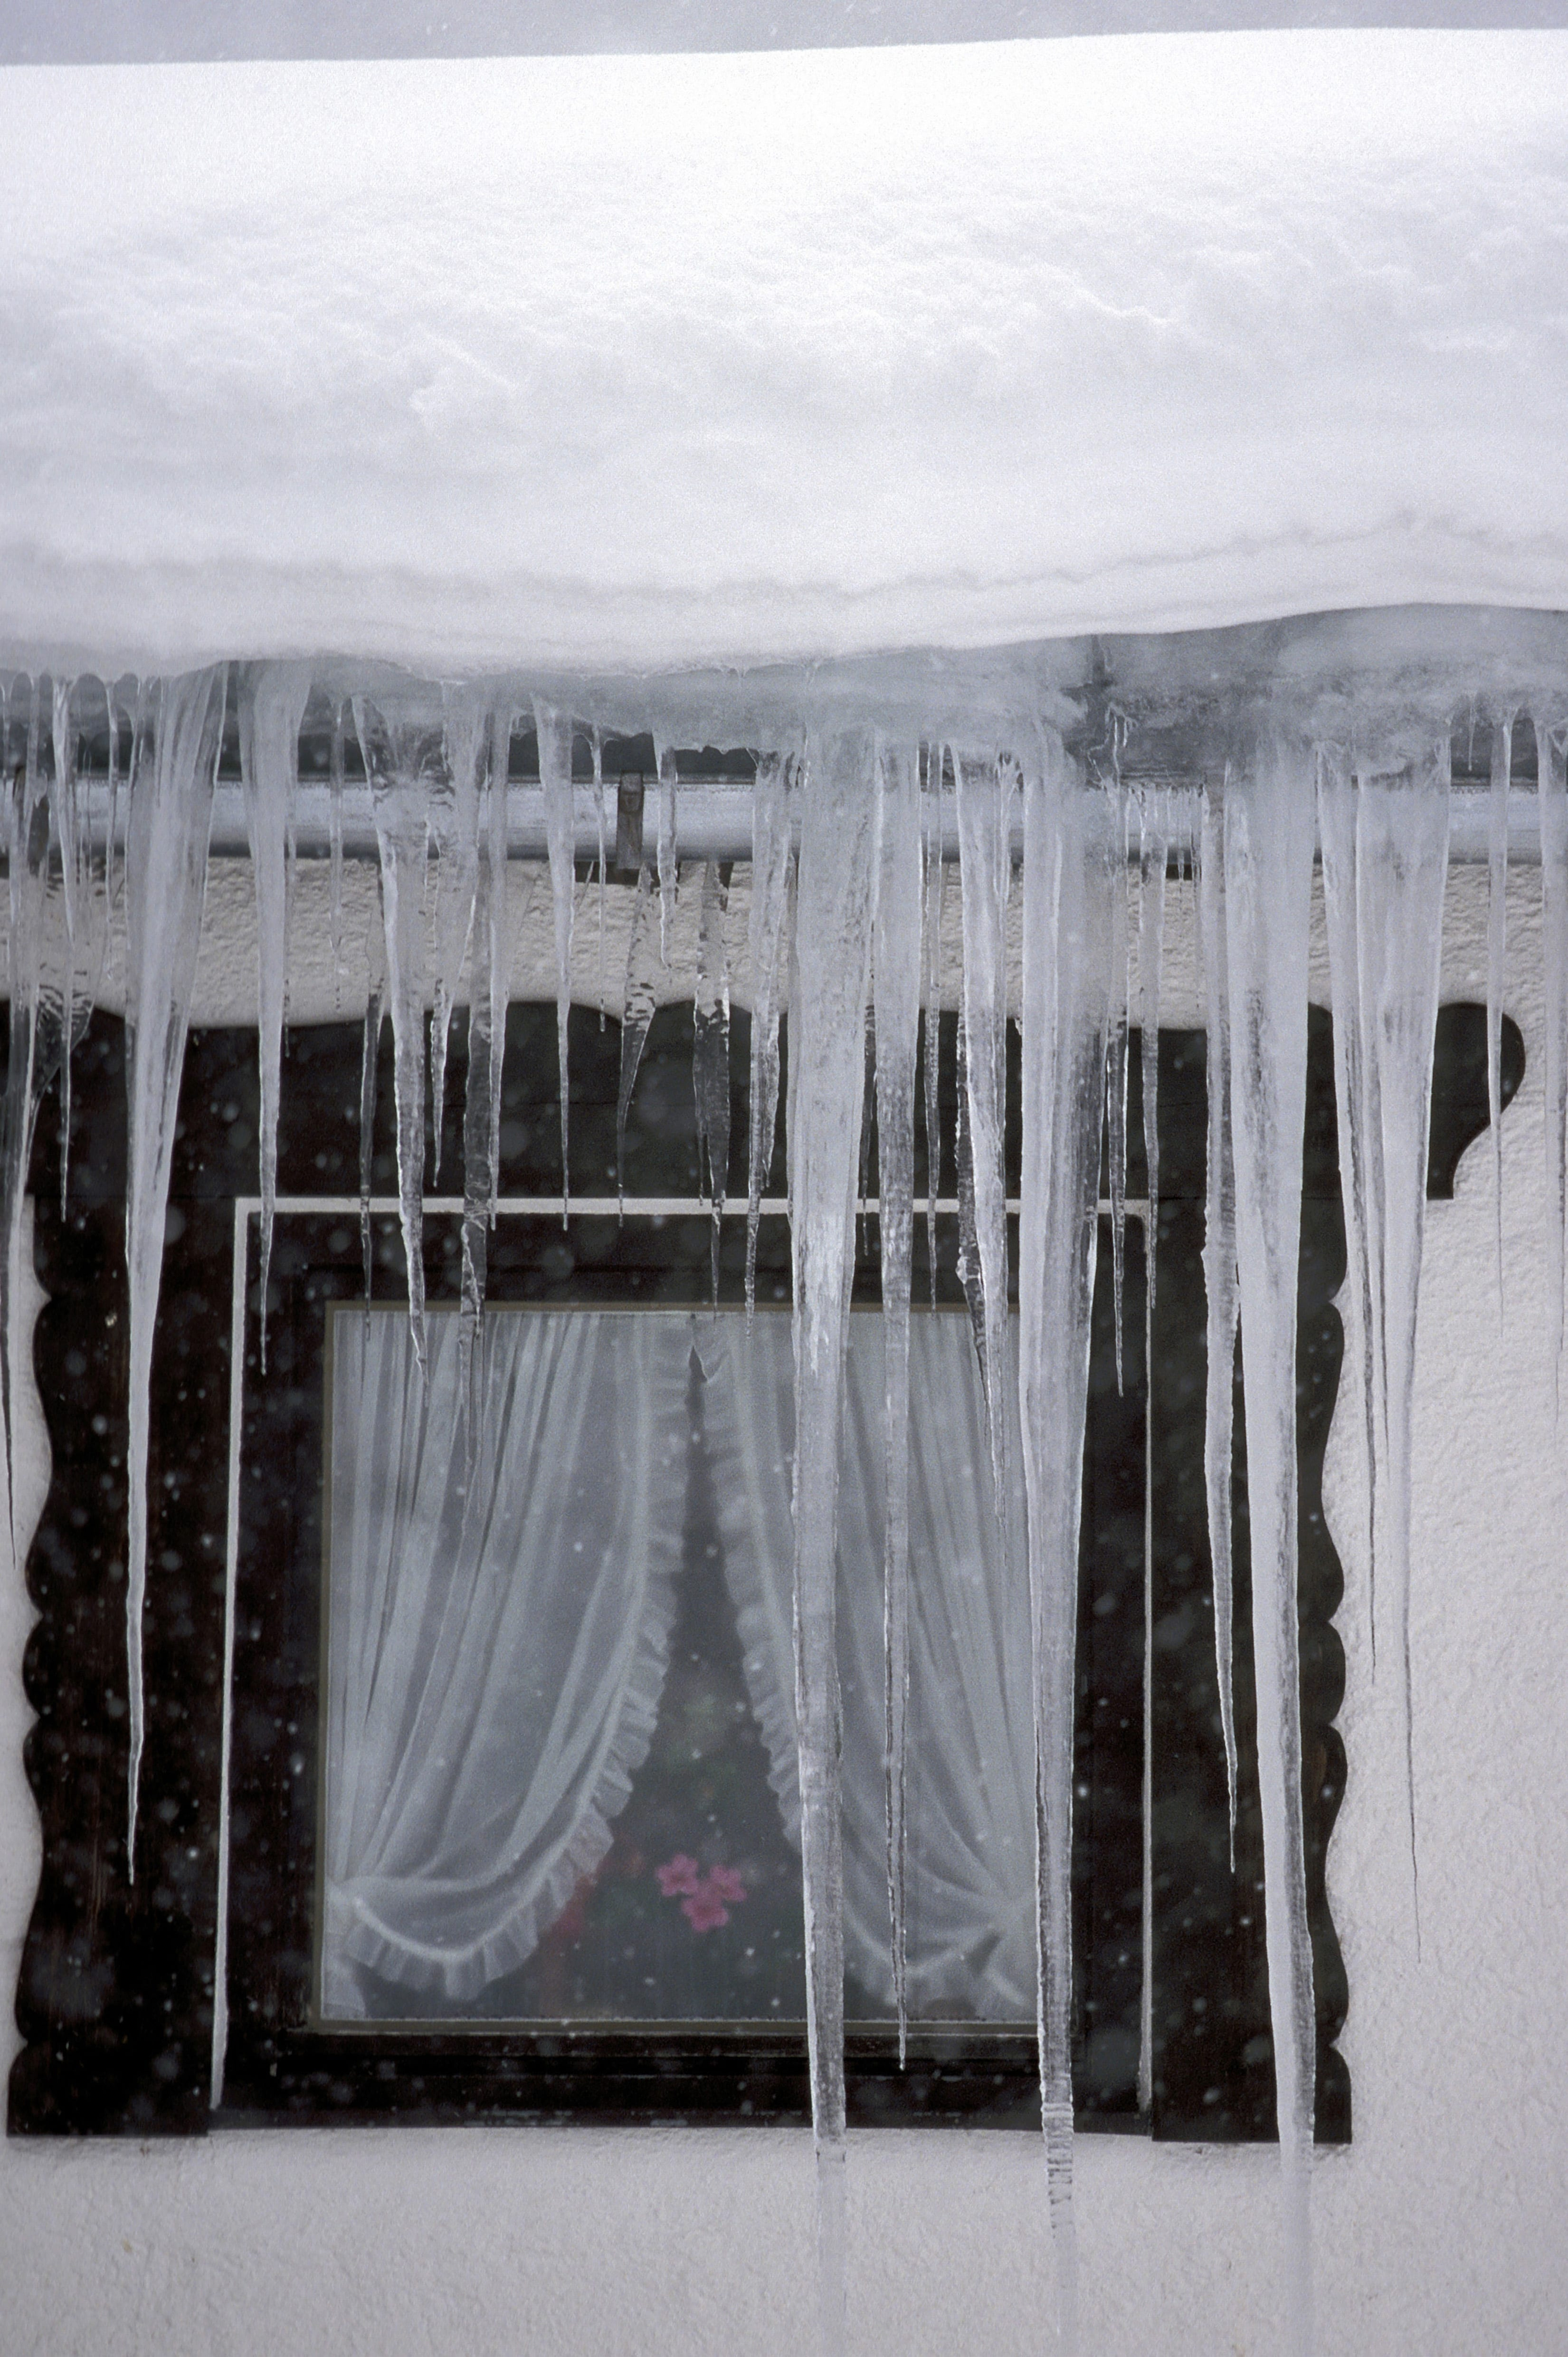 Icicle at the window (00007887)